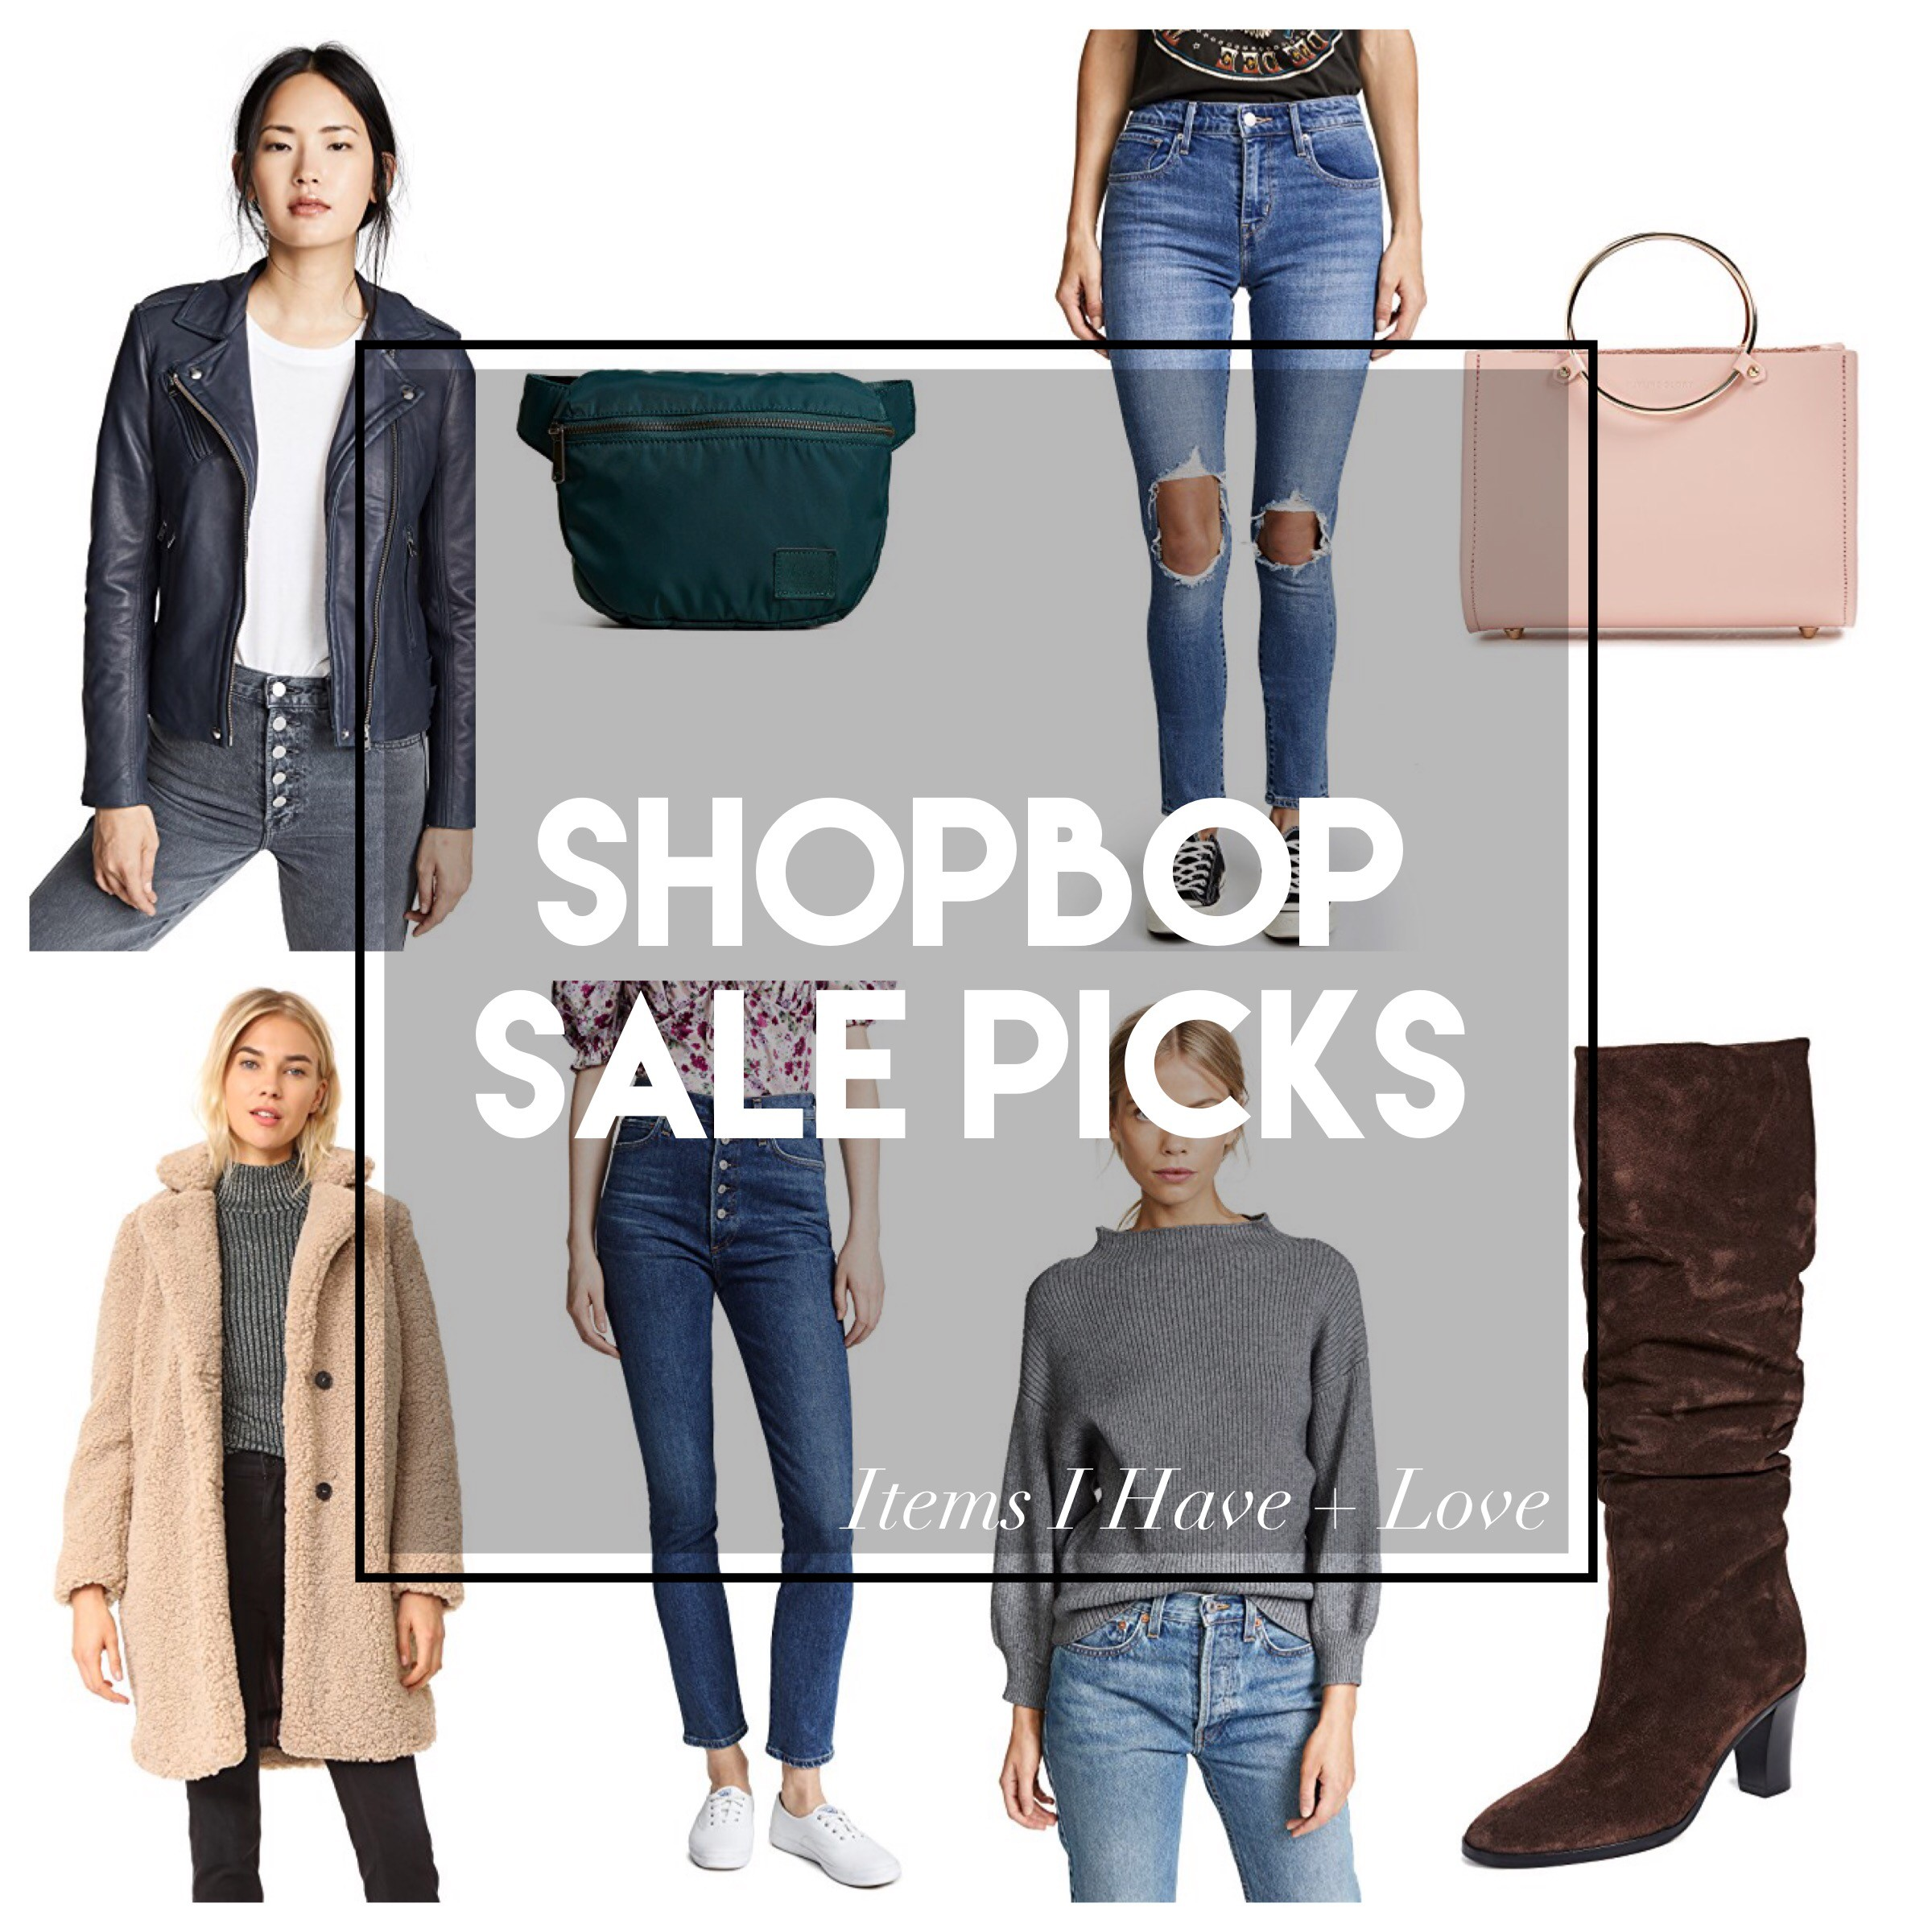 508d15a9ef1 I thought I d change it up a little with how I approach these seasonal sales–especially  because the Shopbop sale is so overwhelming (but so good).